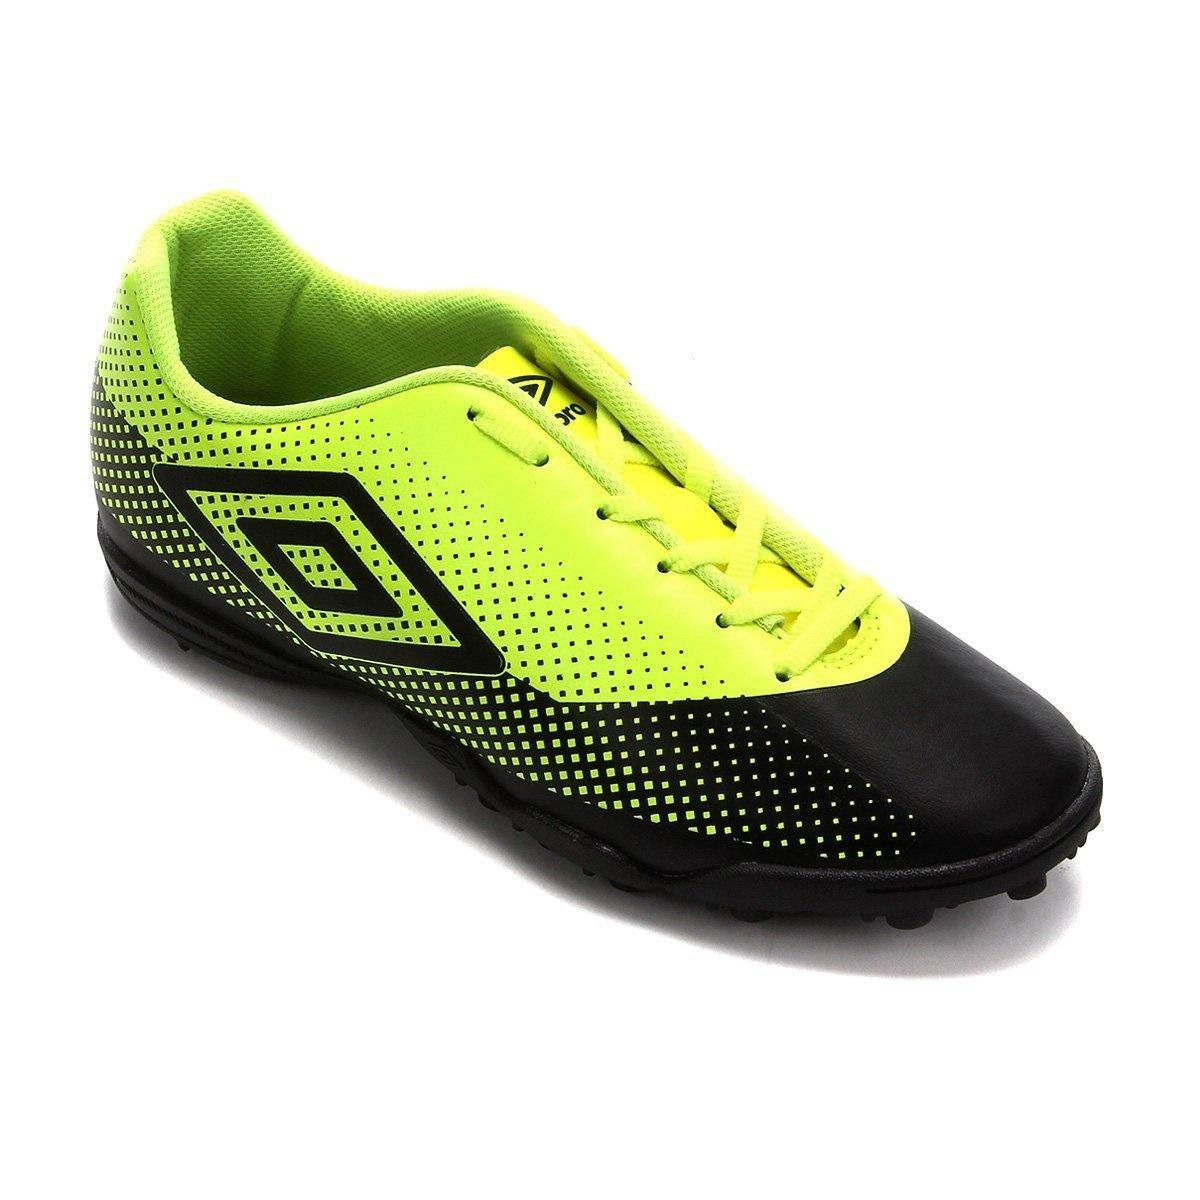 Chuteira Adulto Umbro Icon Society - Preto / Limao